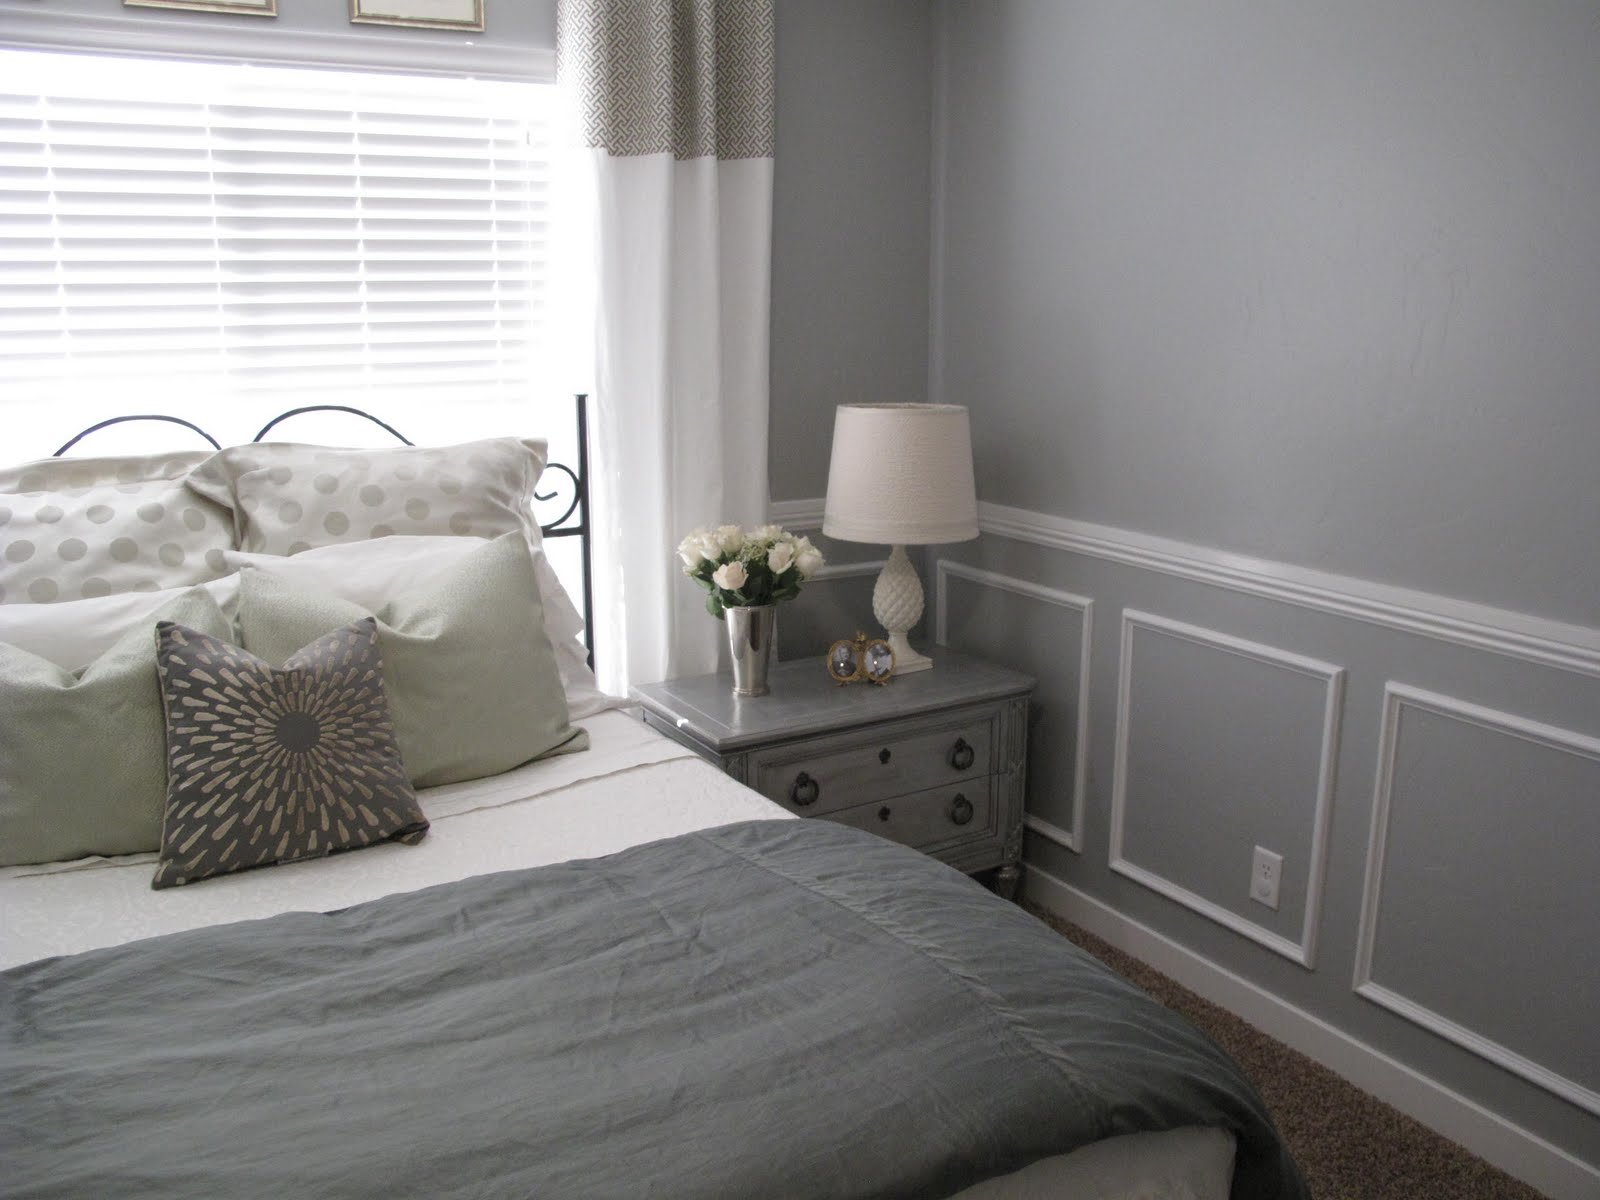 Little miss penny wenny master bedroom makeover reveal - Bedroom wall paint colors ...